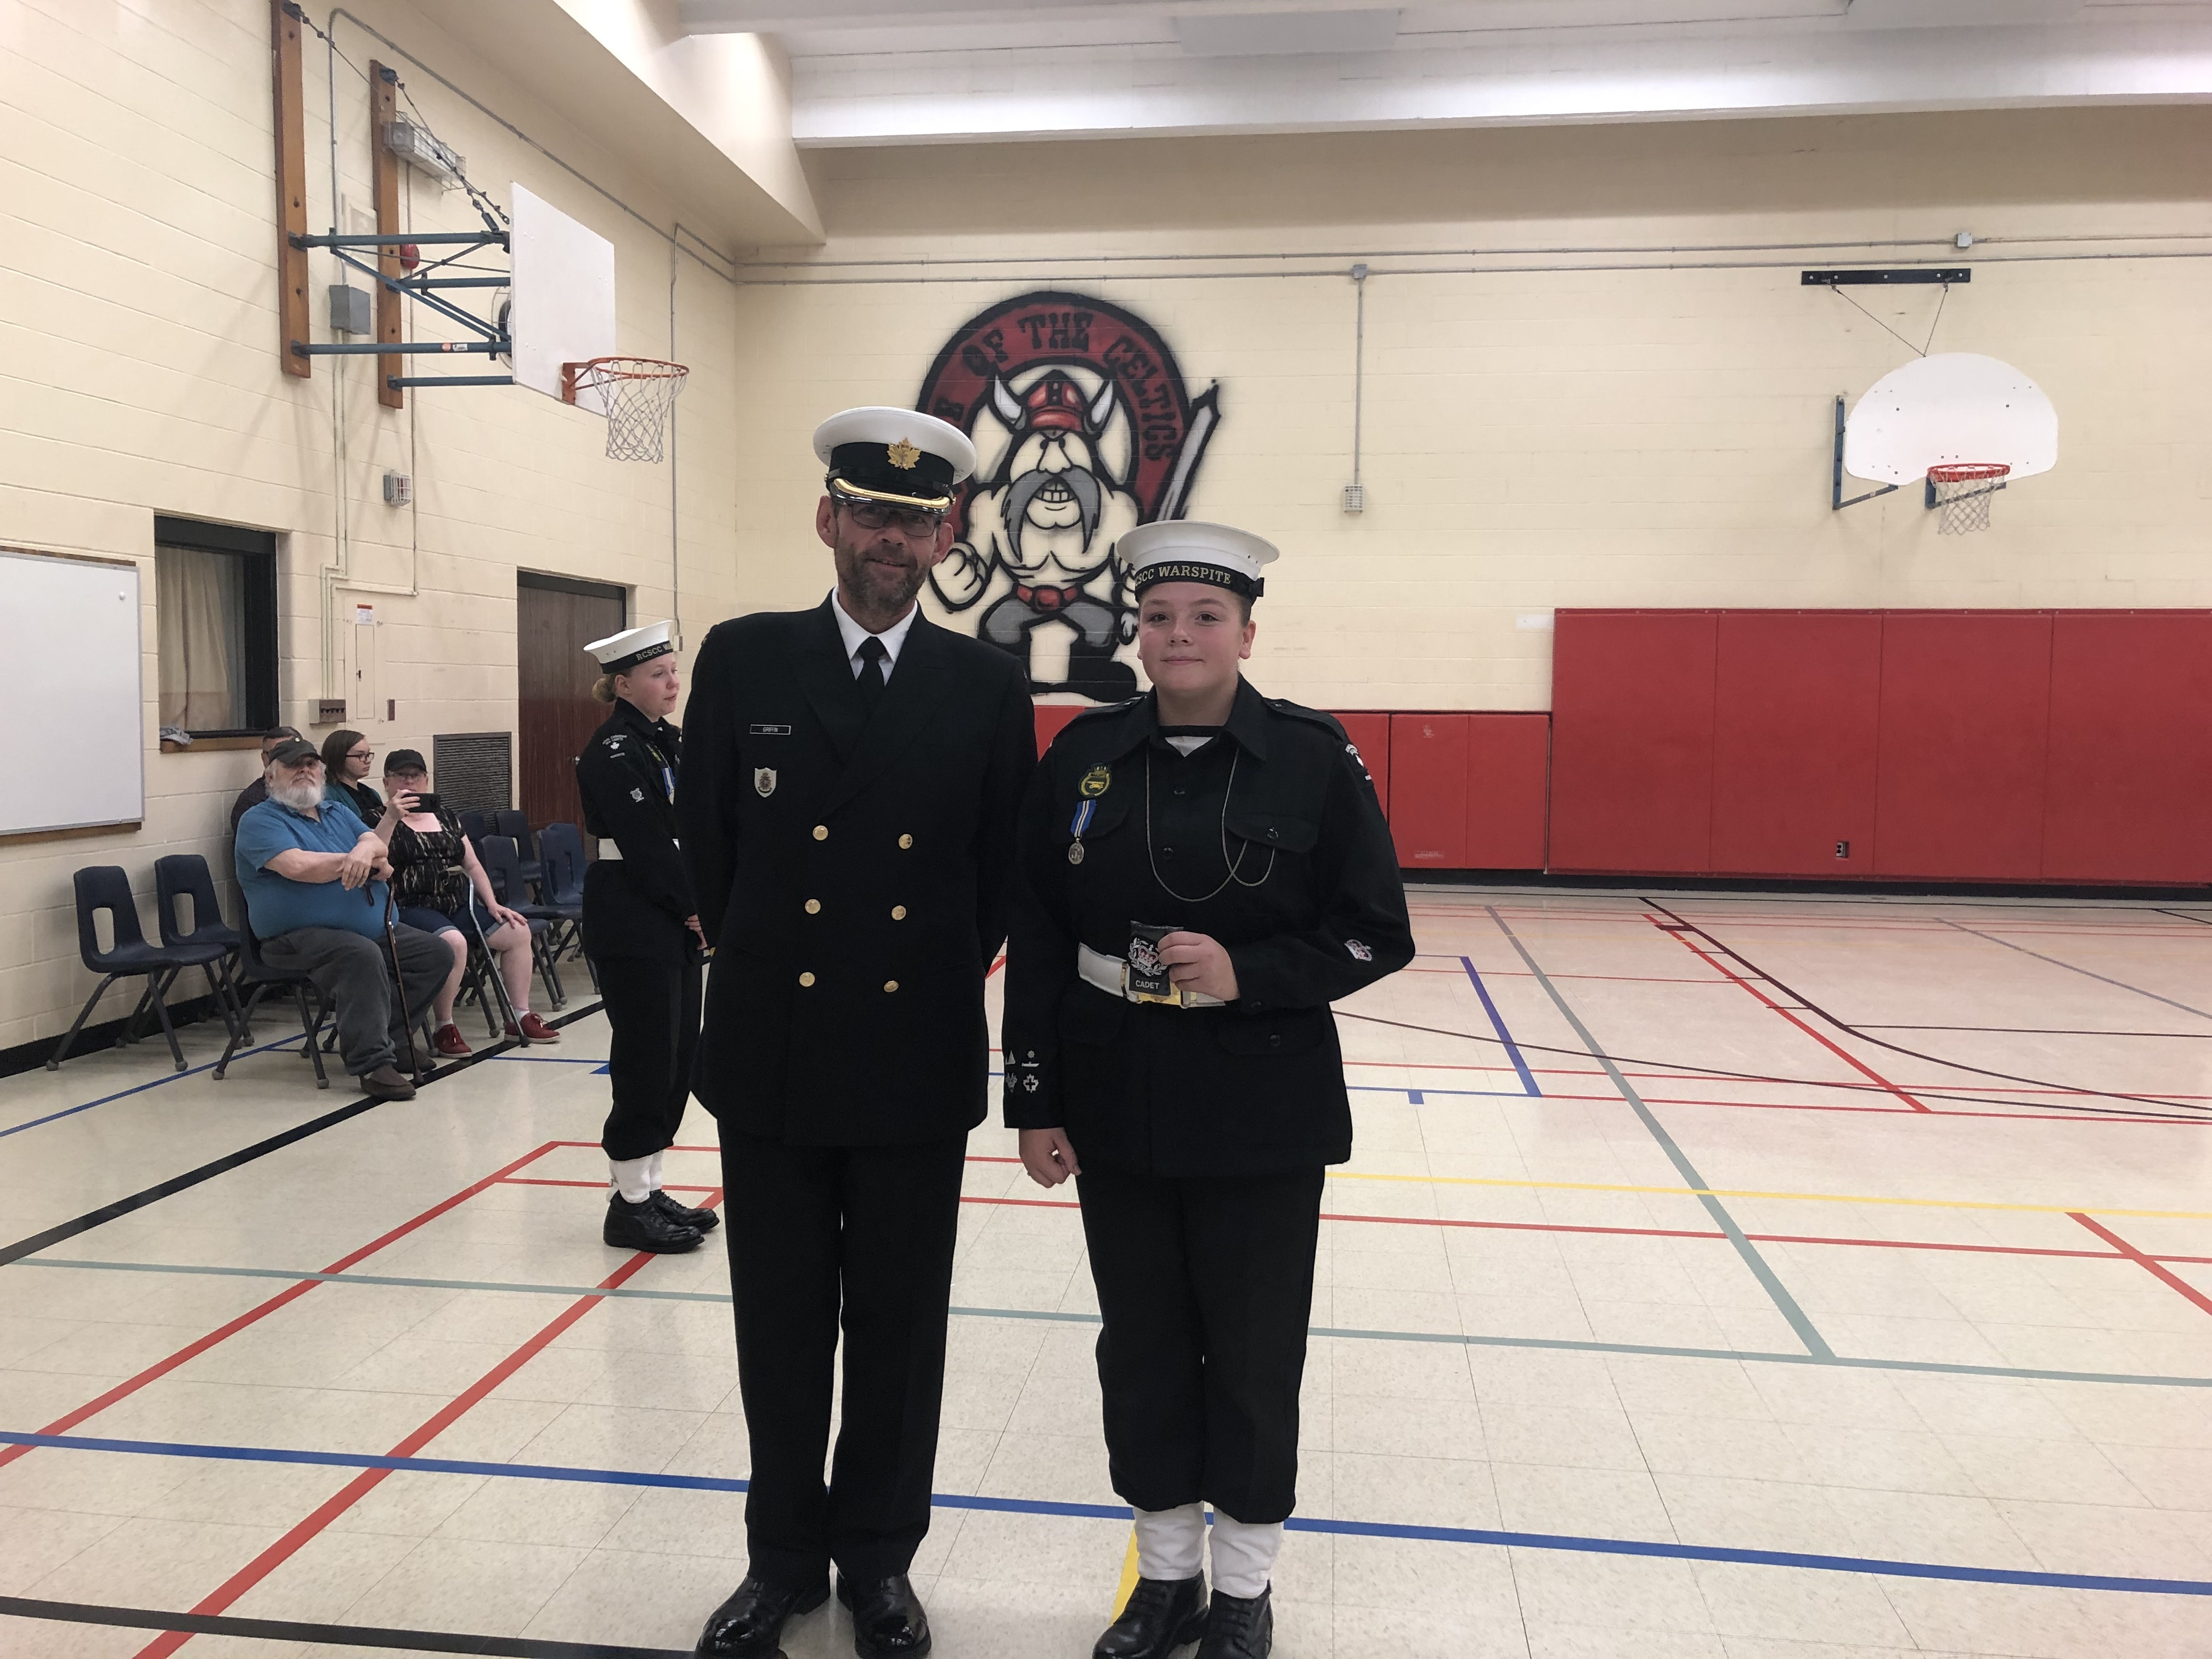 PO1 Weldon getting promoted to CPO2